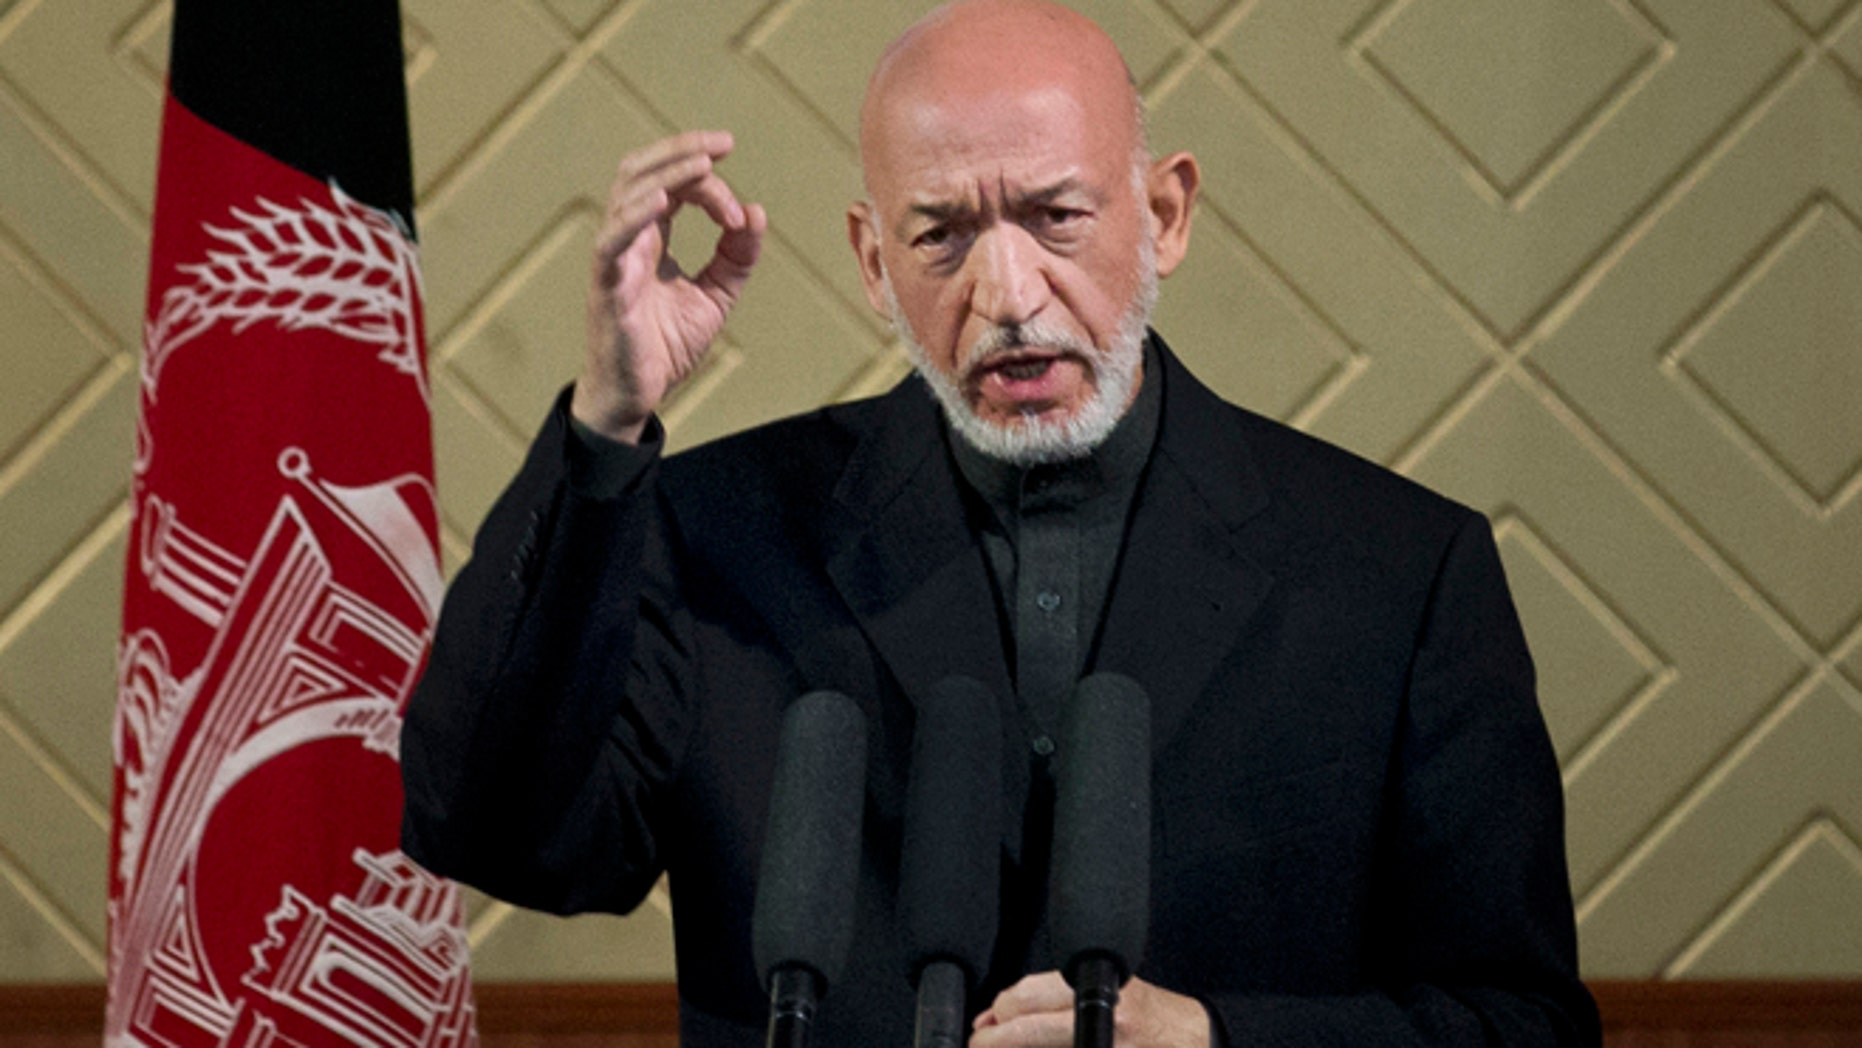 May 9: Afghan President Hamid Karzai says he's ready to let US maintain nine bases in country at a ceremony at Kabul University.